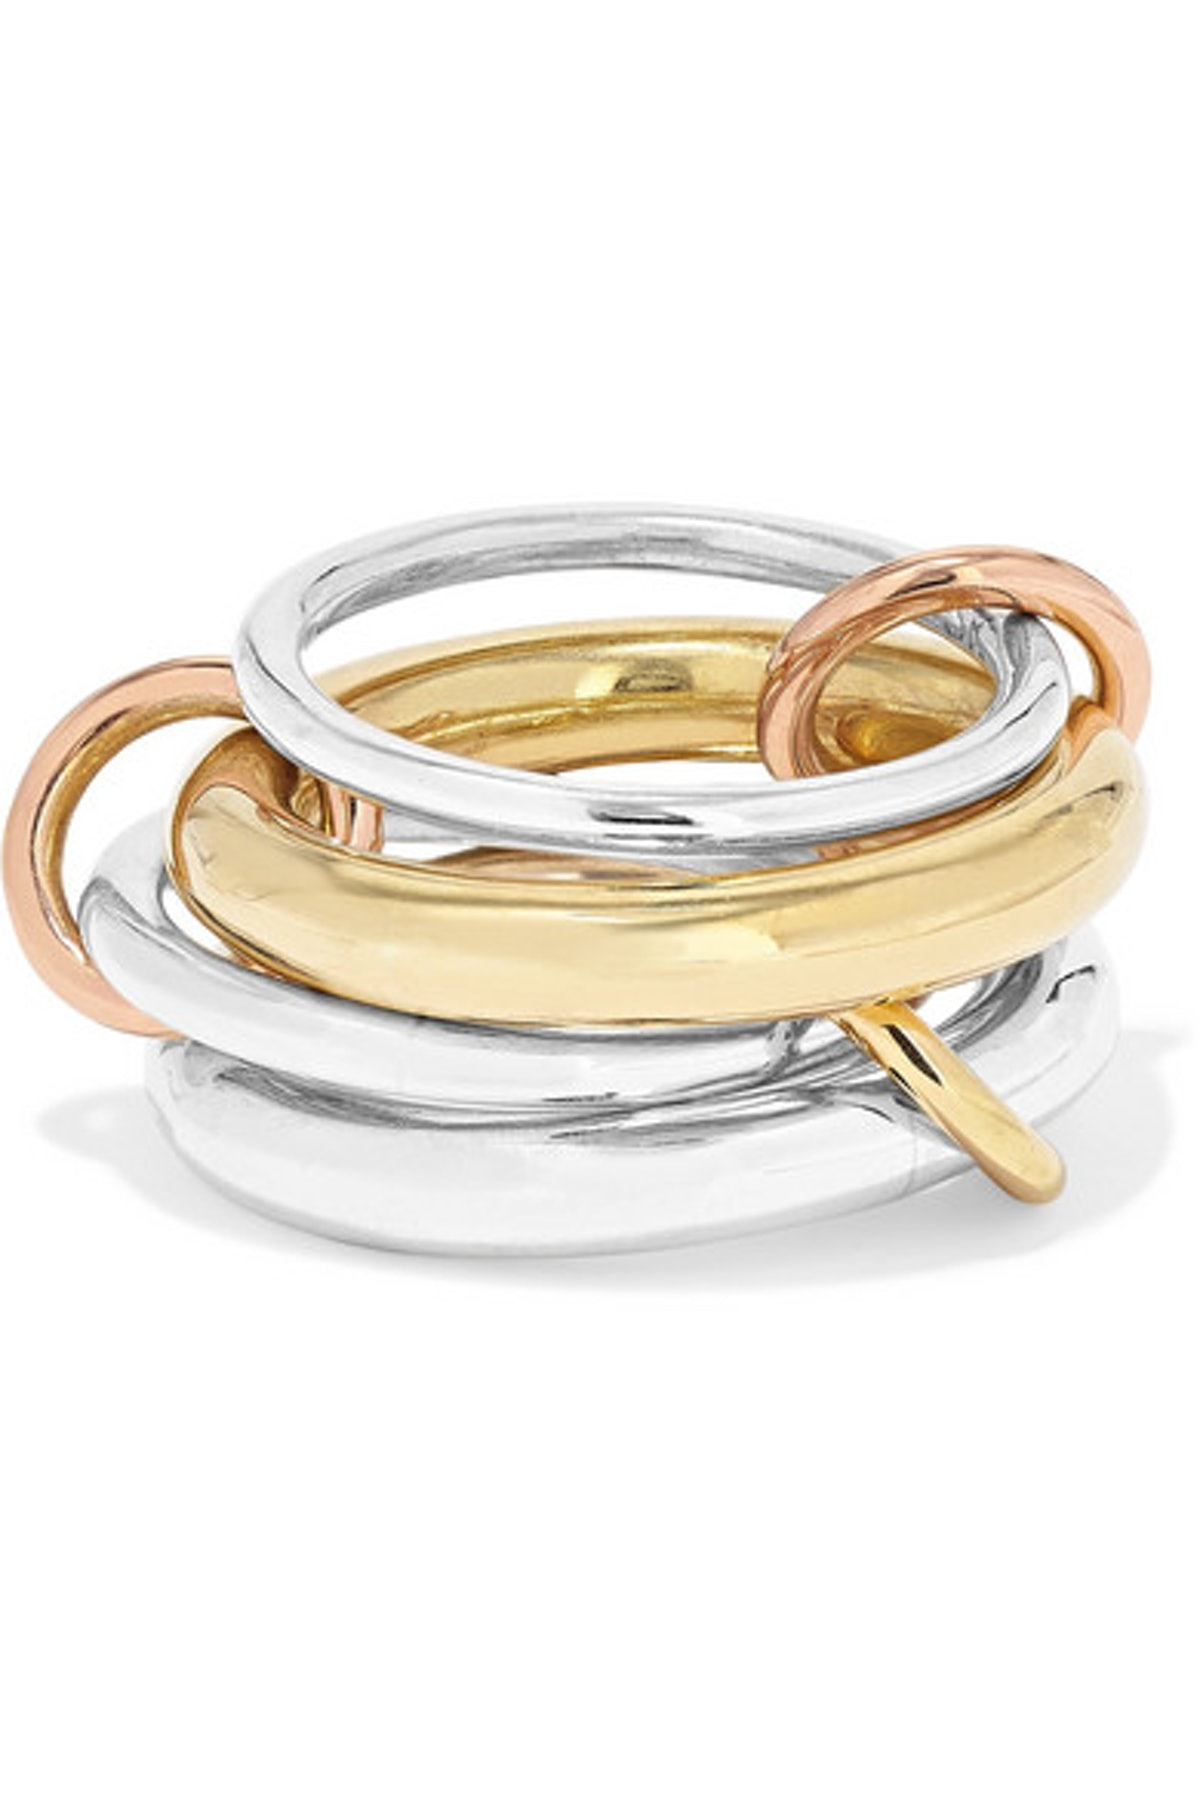 Spinelli Kilcollin Set of Four 18-karat Yellow and Rose Gold and Sterling Silver Rings